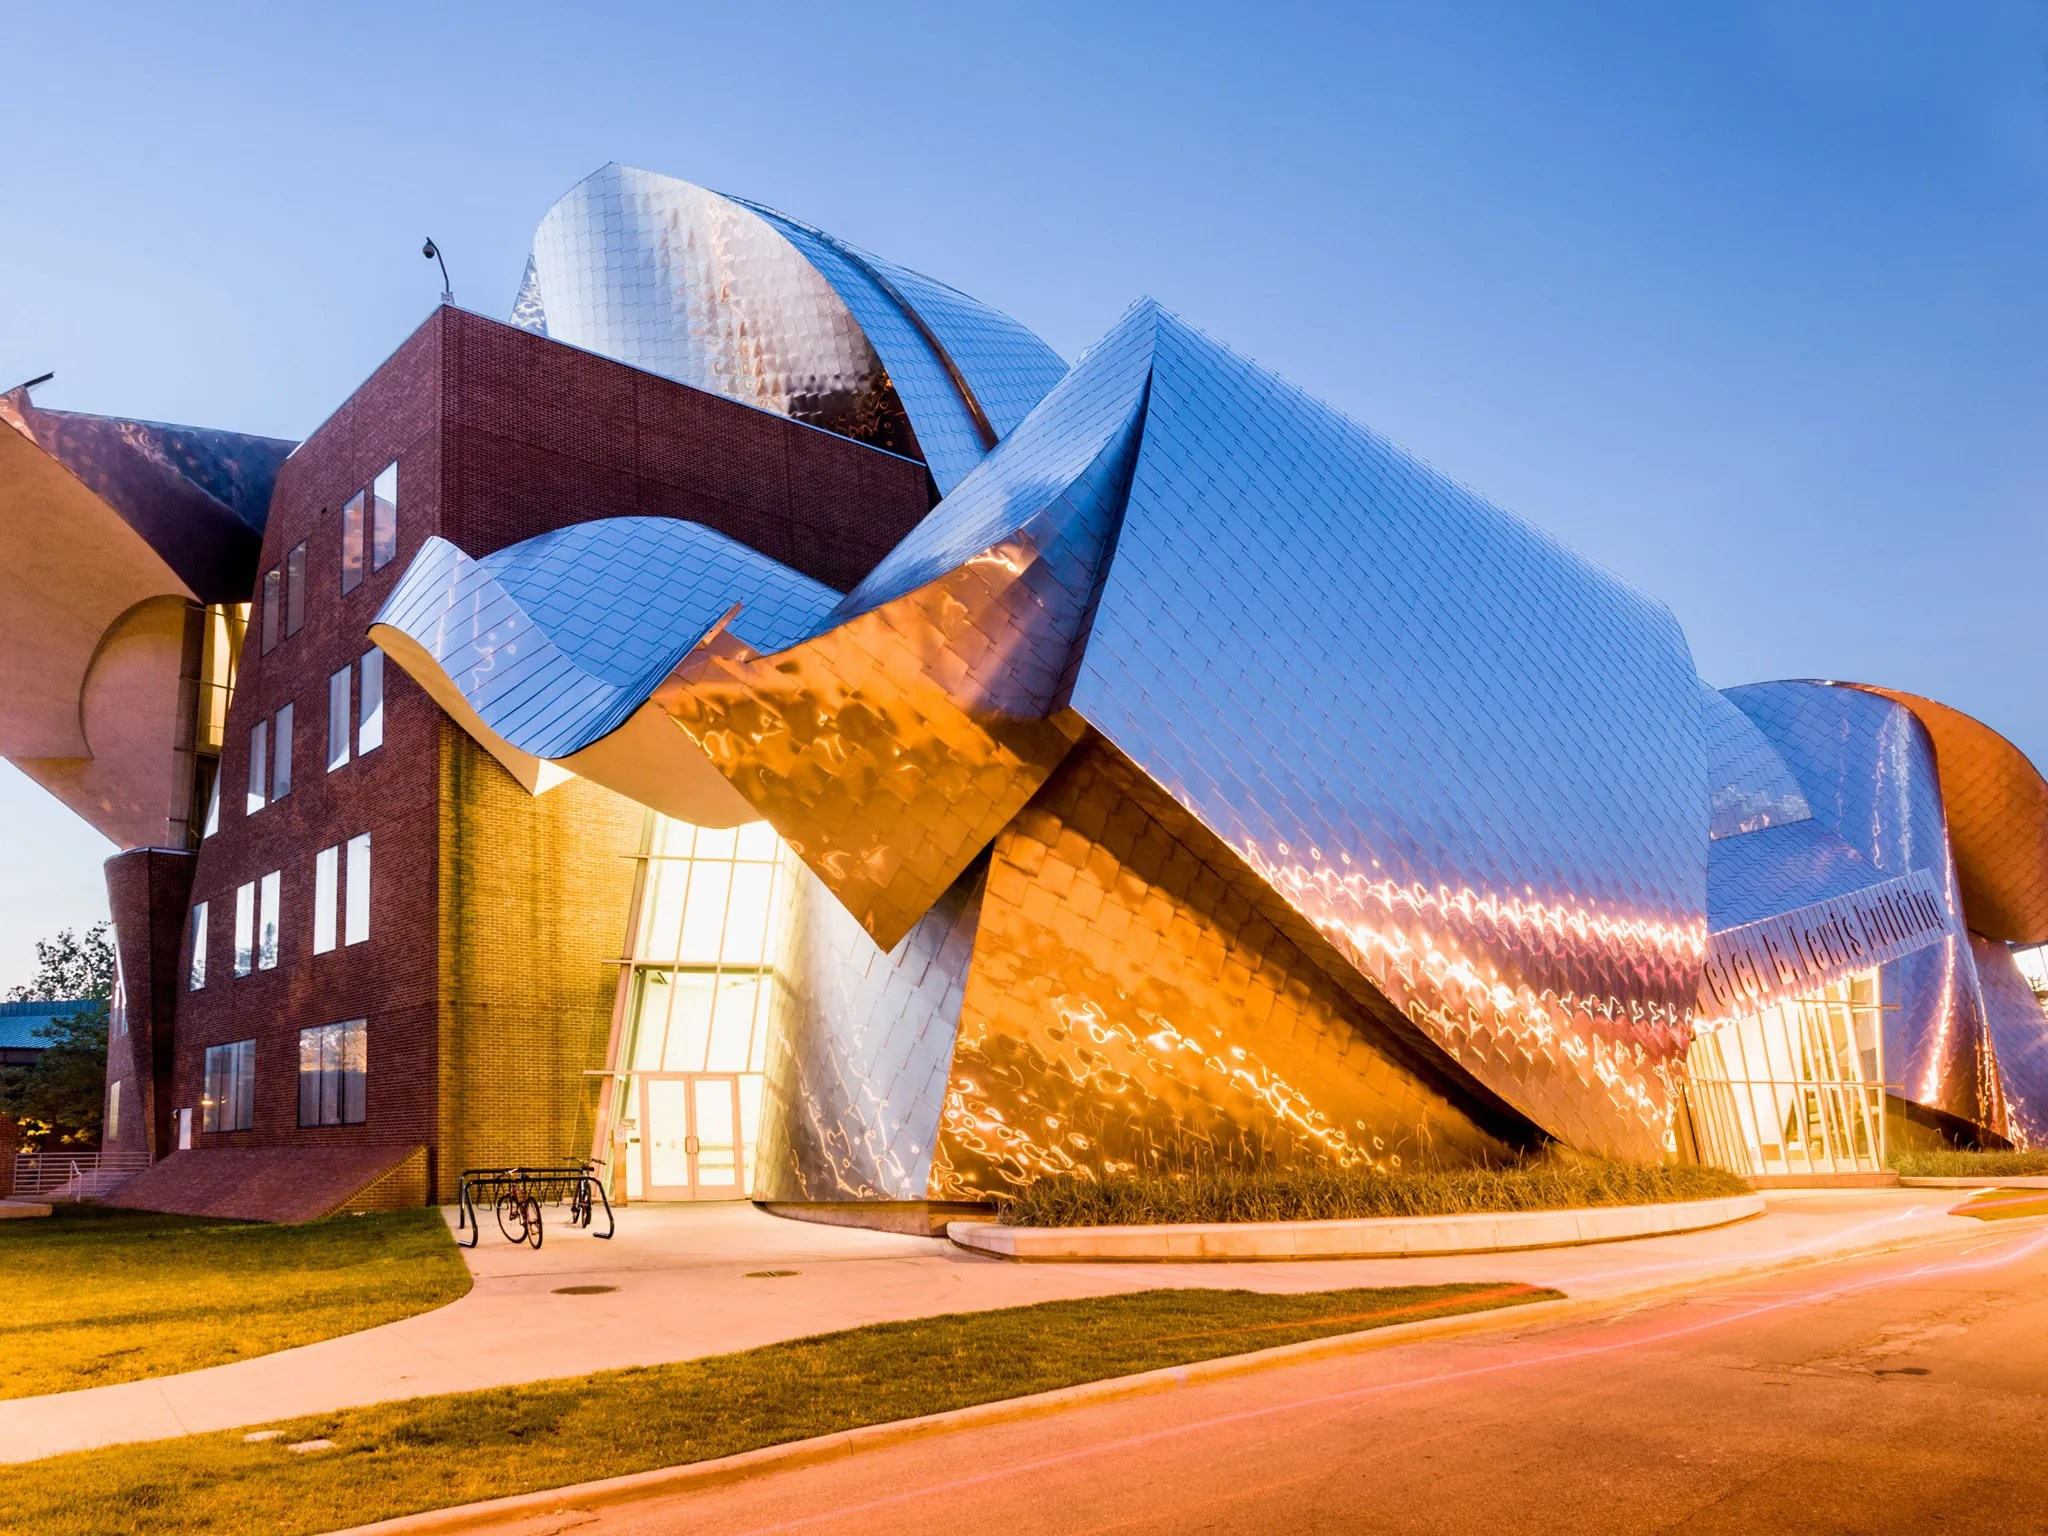 The Best Driving Trip To See Frank Gehry Architecture